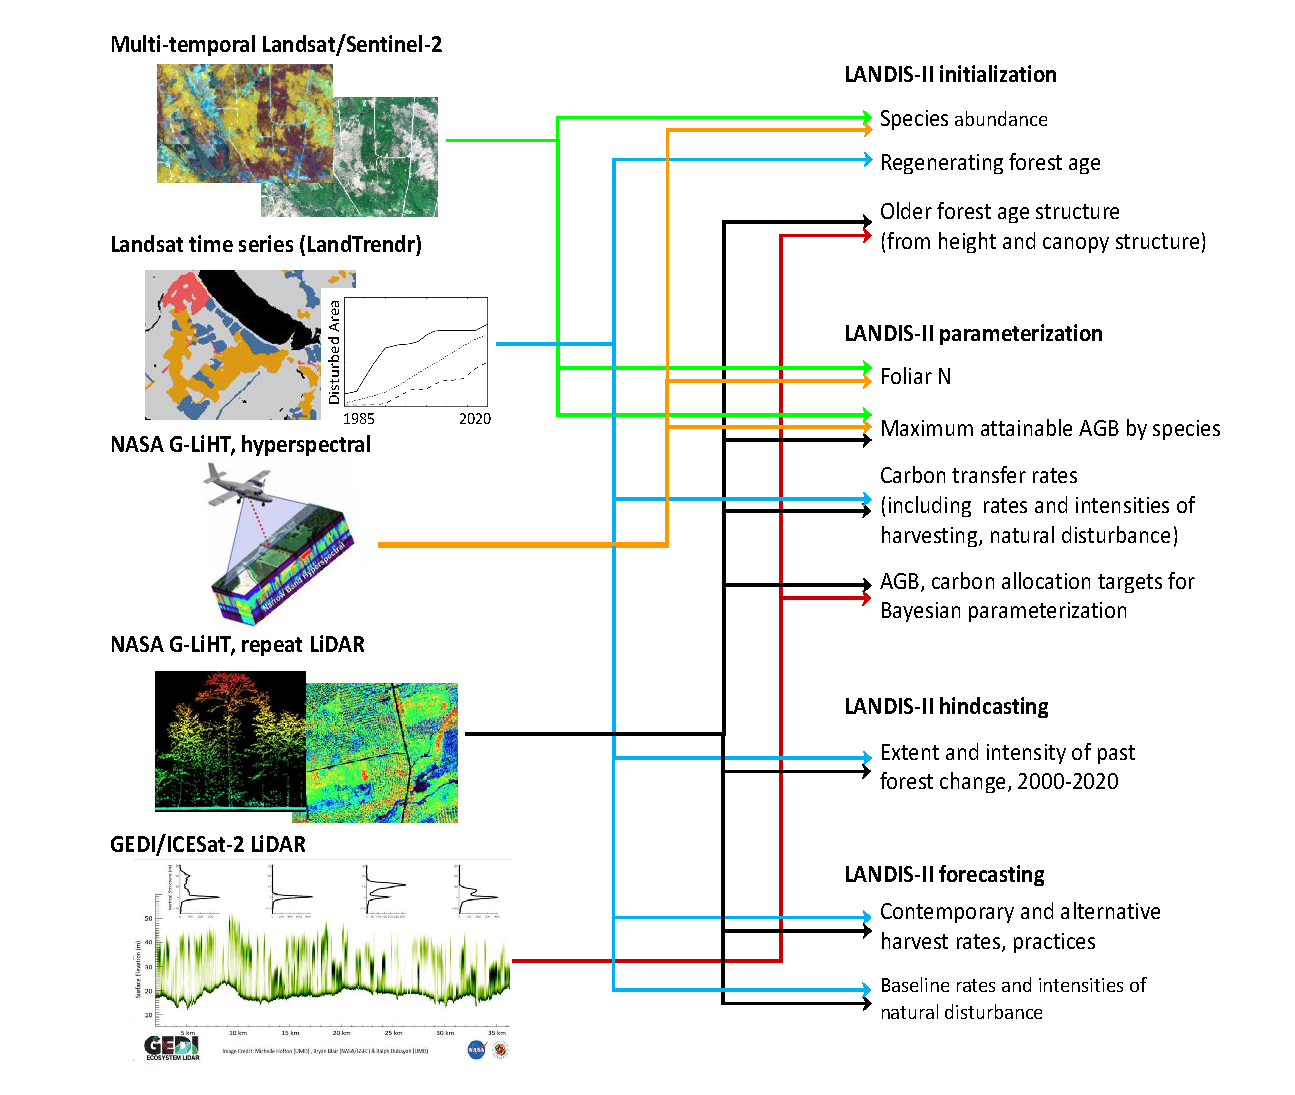 Chart showing linkages between remote sensing platforms and project components